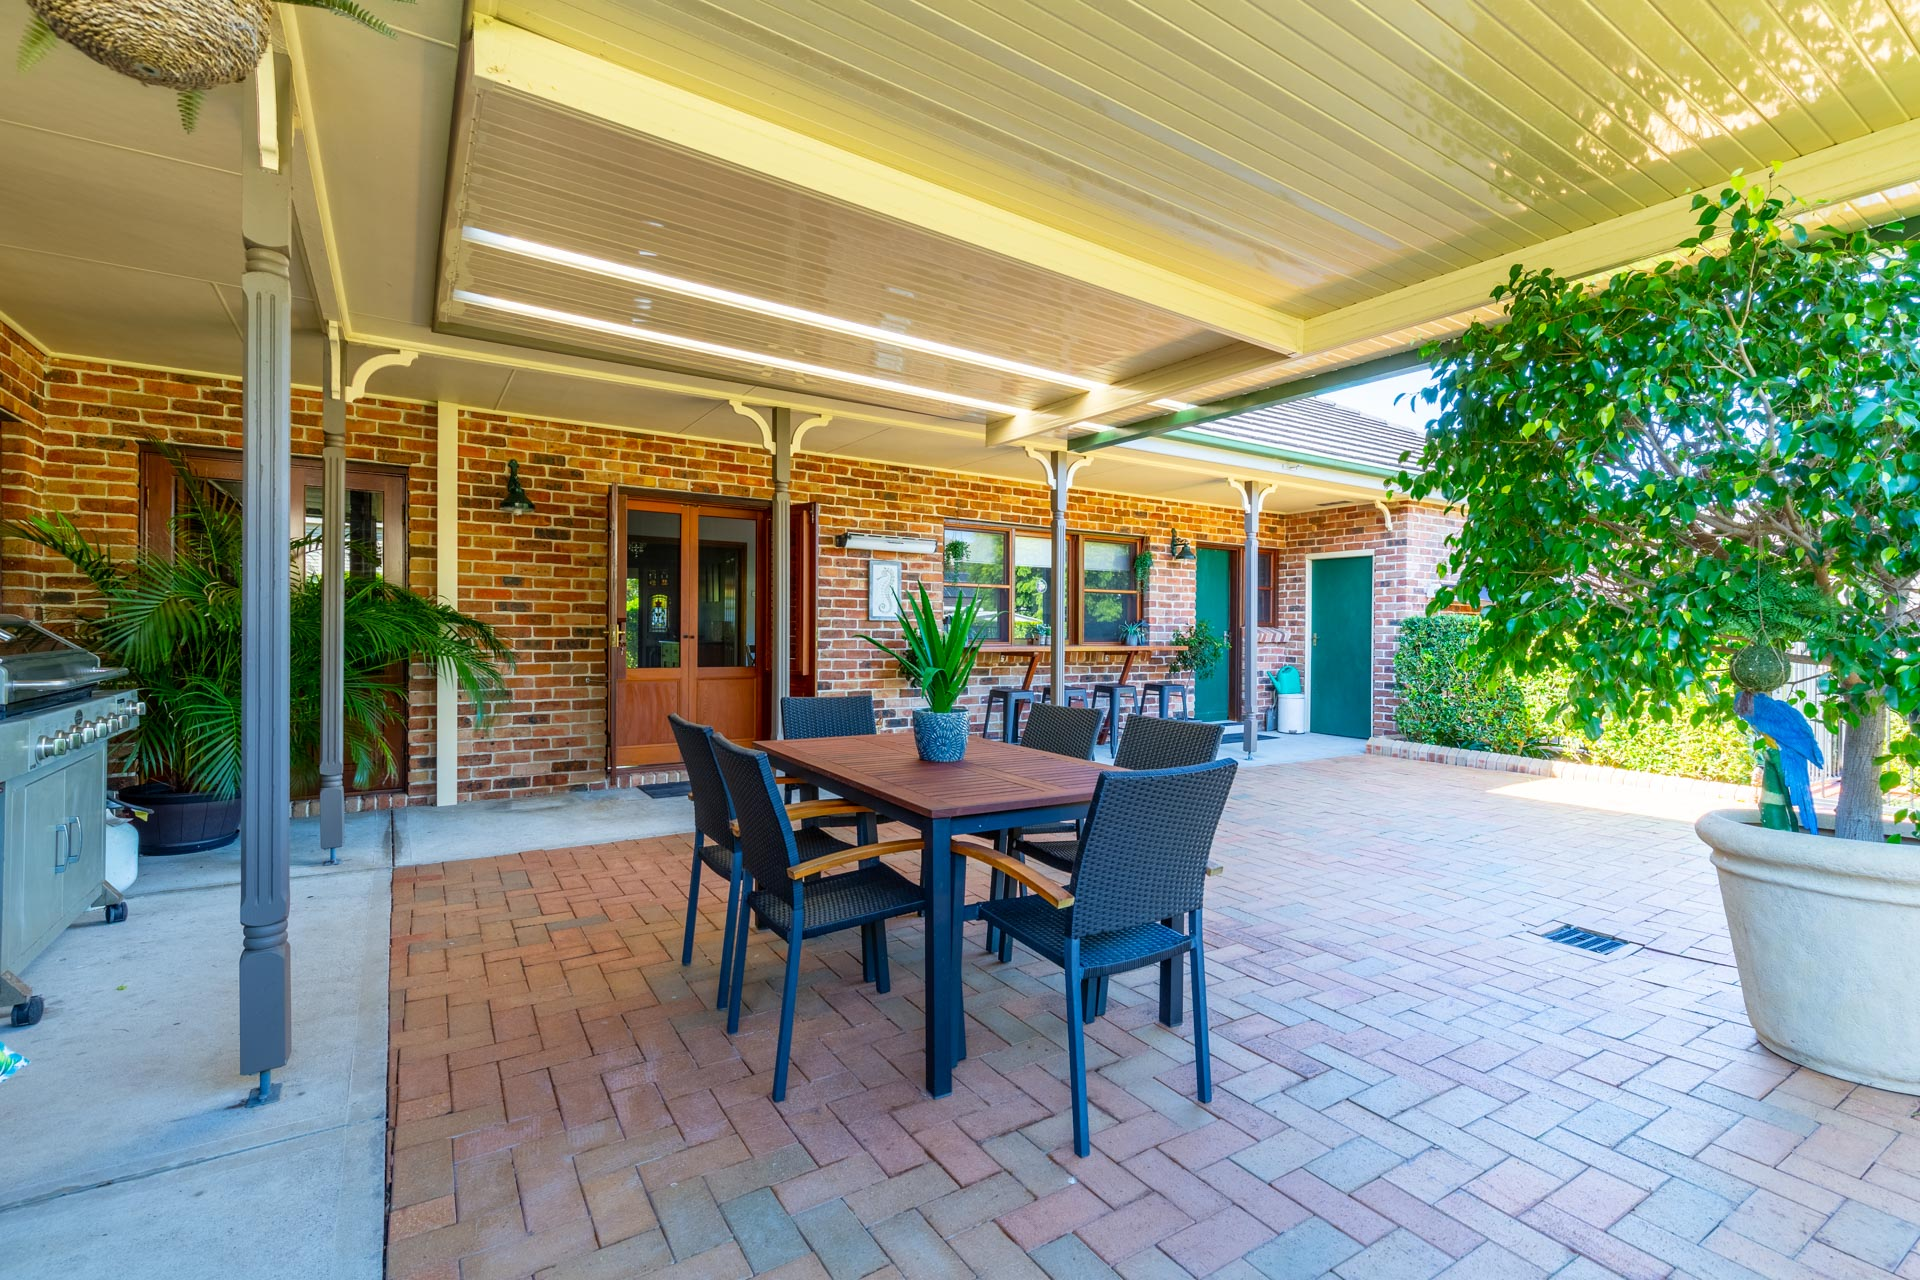 1 Staveley Crt   Lakelands (24 of 24)